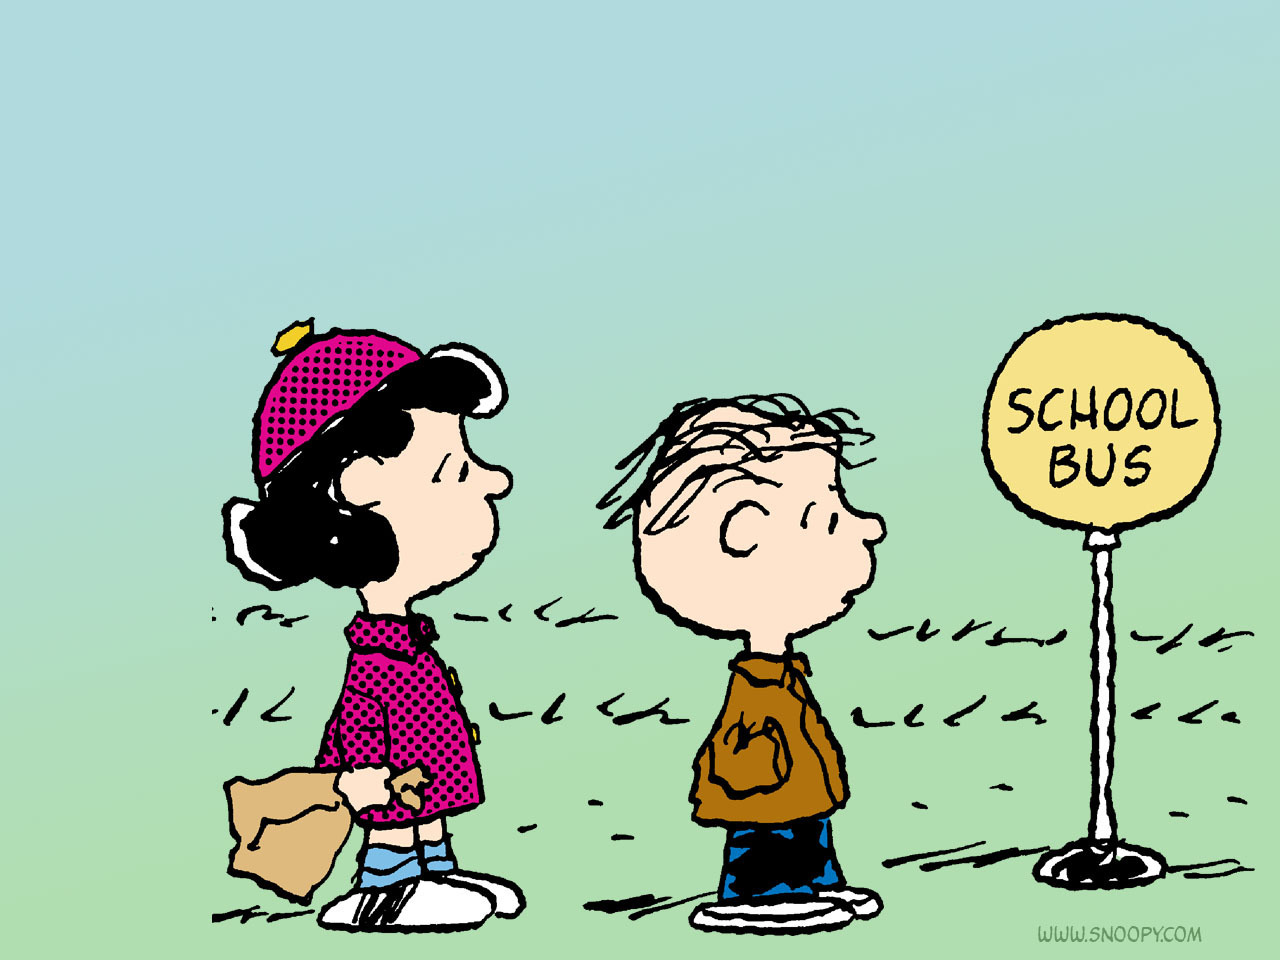 school bus linus and lucy   Peanuts Wallpaper 6273388 1280x960